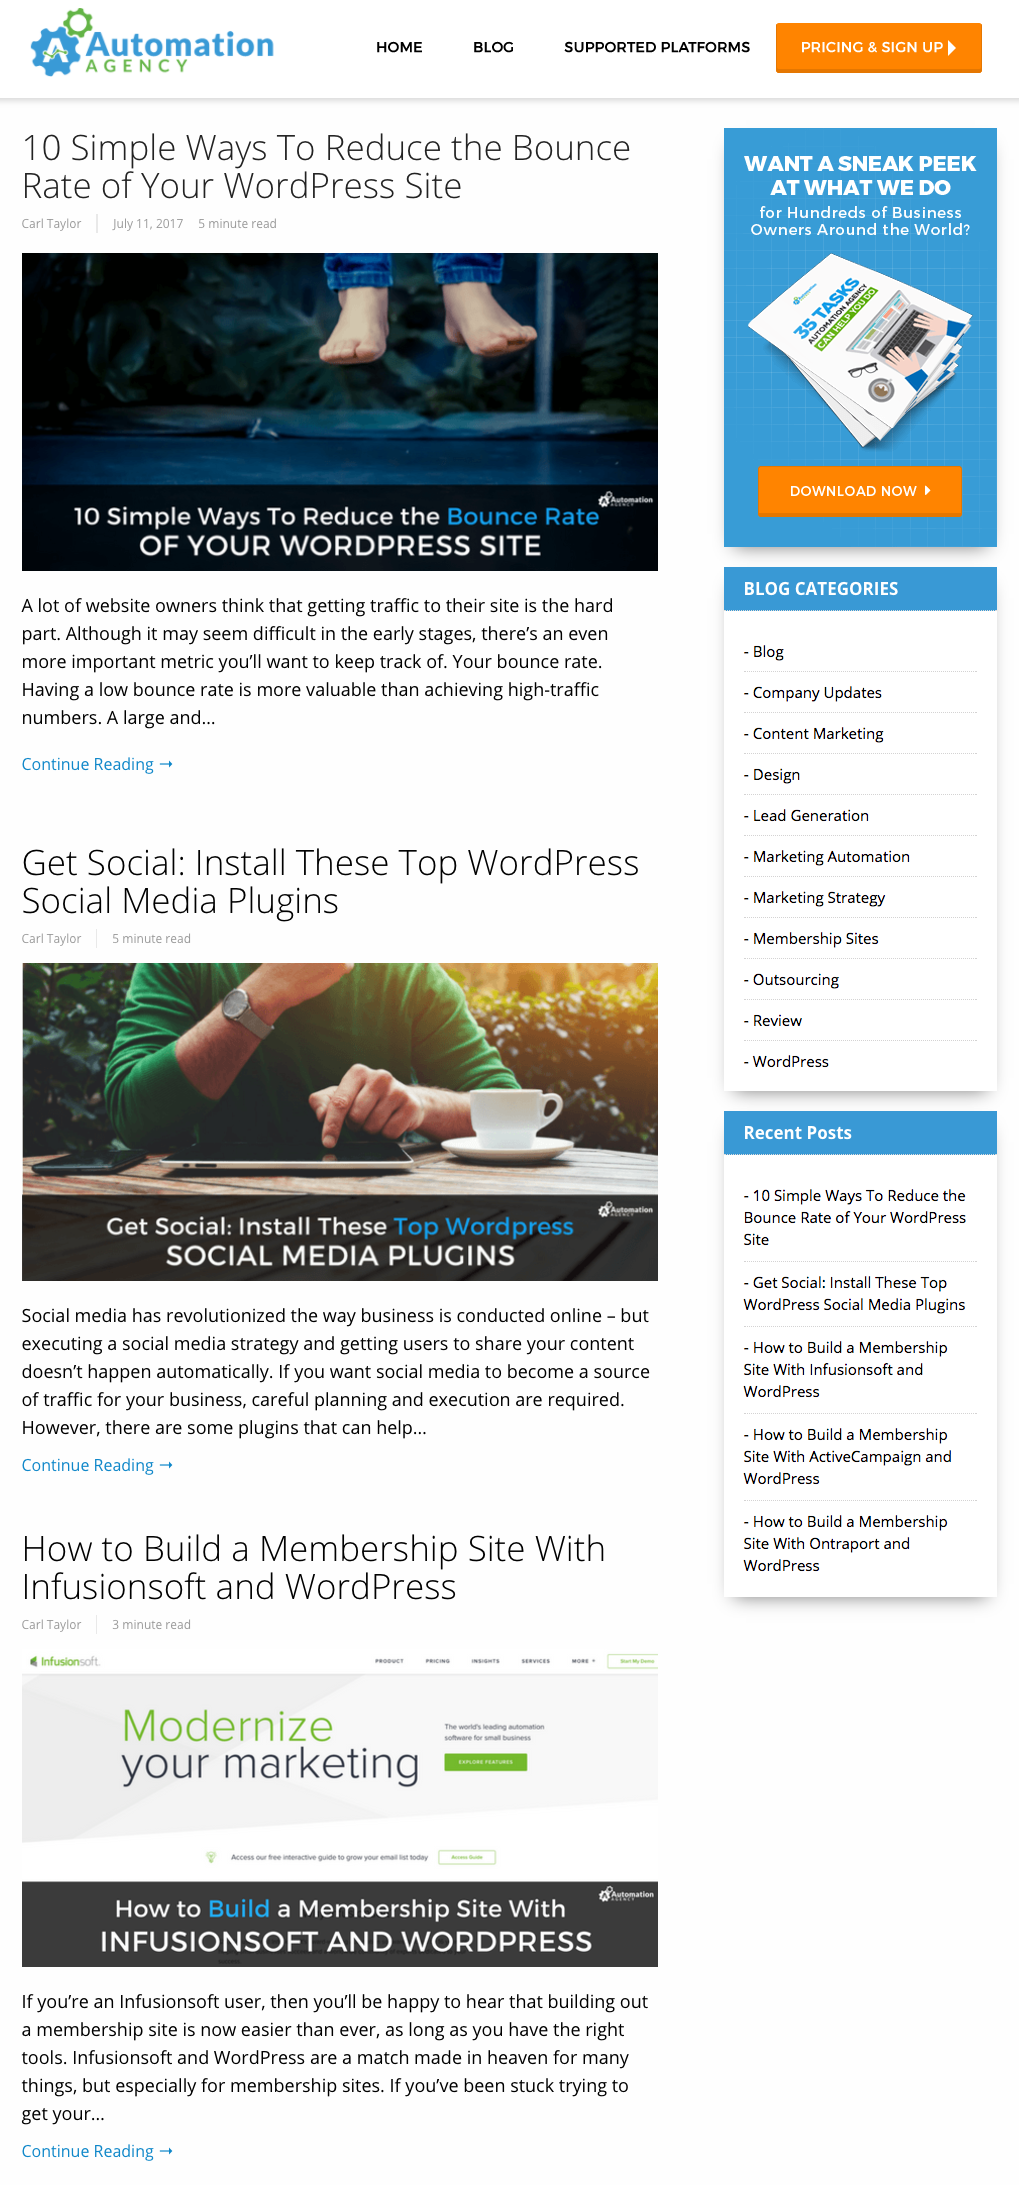 How Build a Webpage With Just 750 Words - OptimizePress